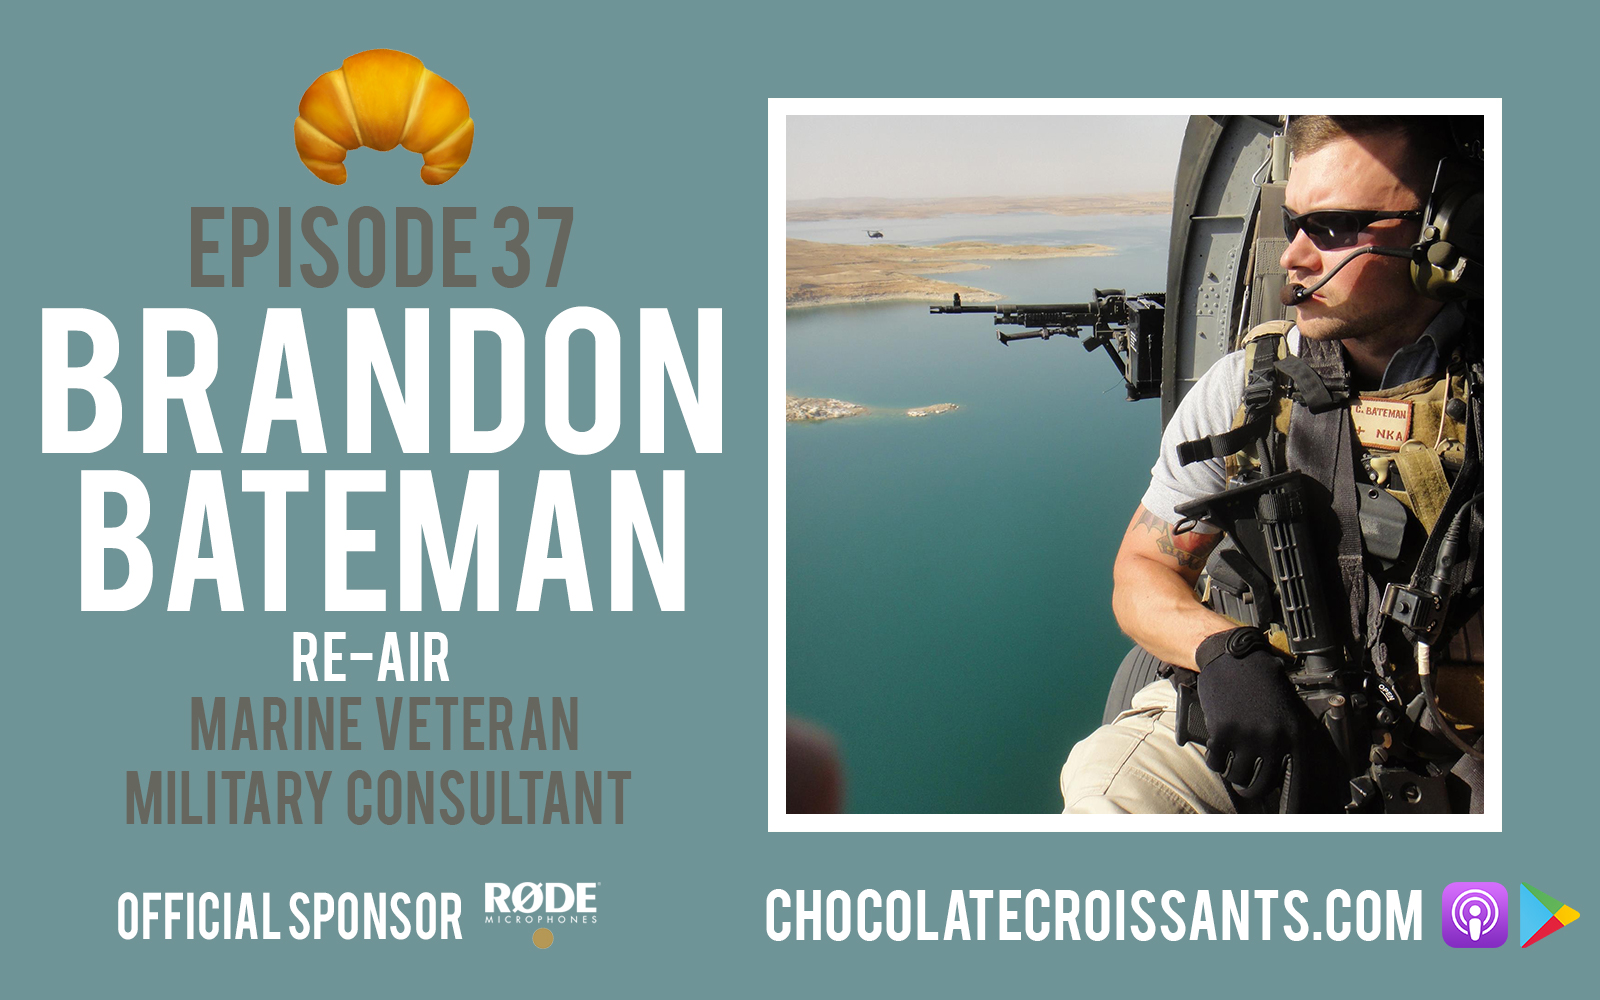 EP37 | Brandon Bateman (Marine Veteran, Military Consultant) Re-Air